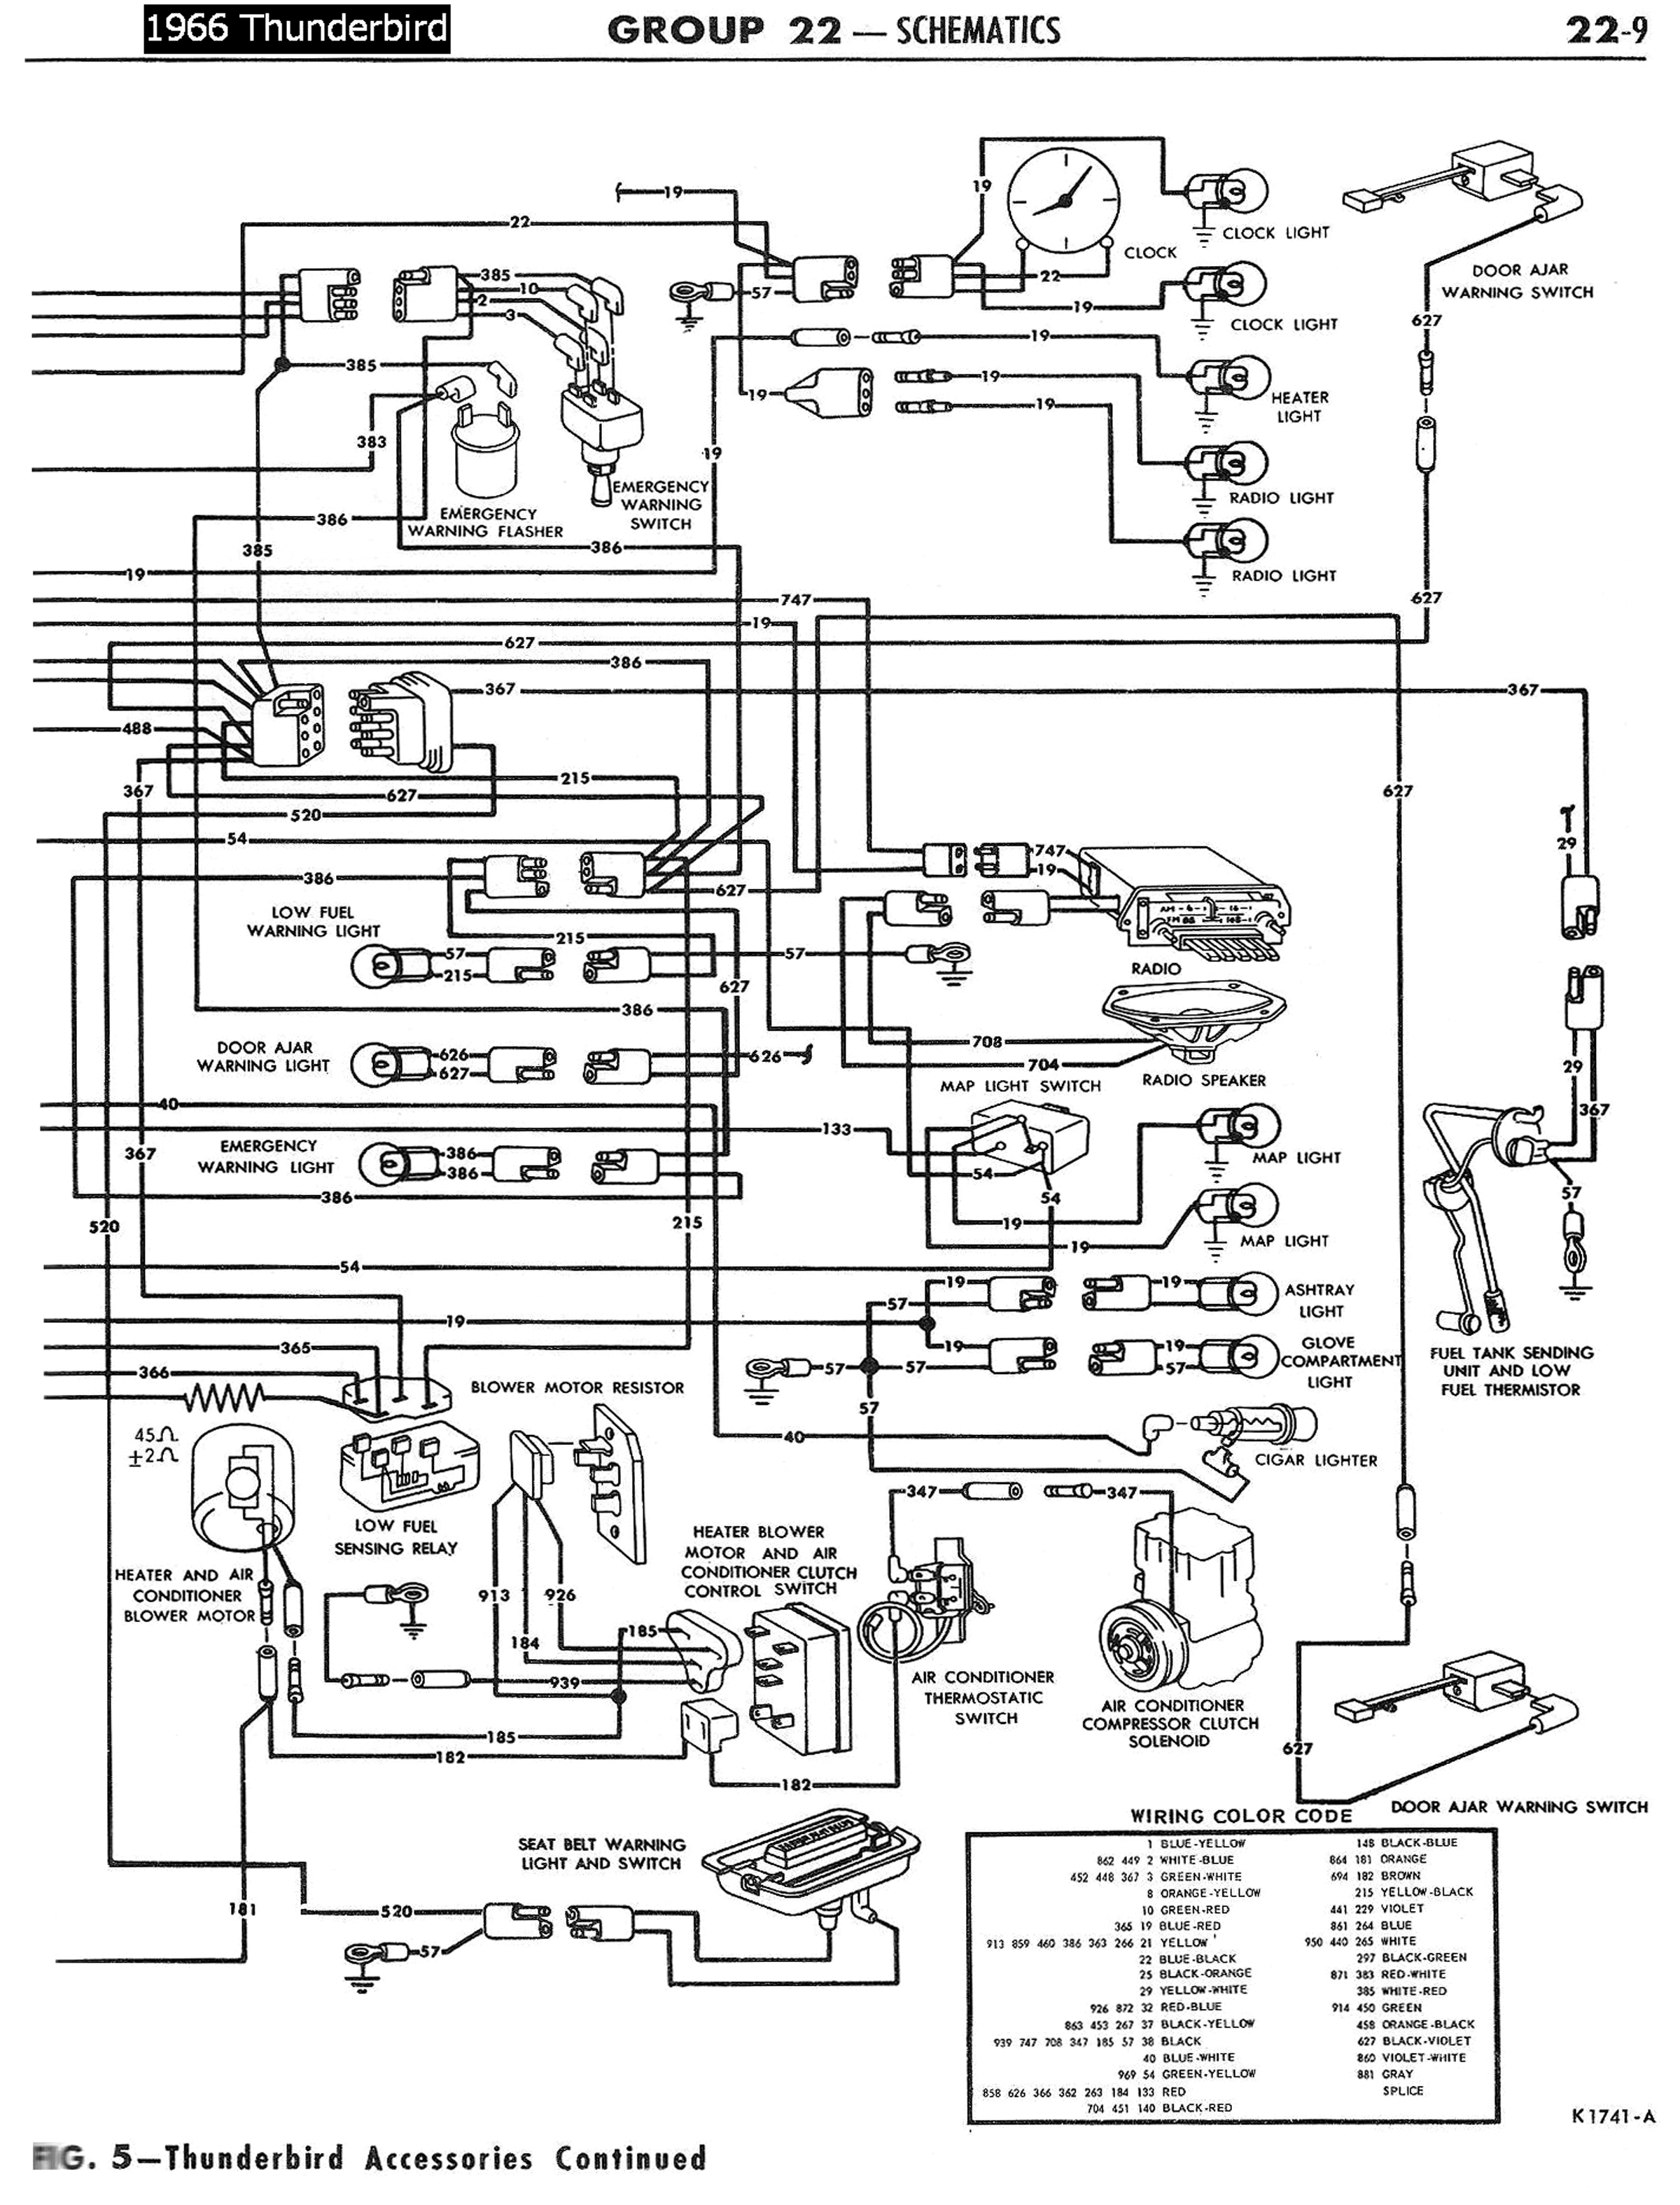 97 s10 transmission wiring diagram